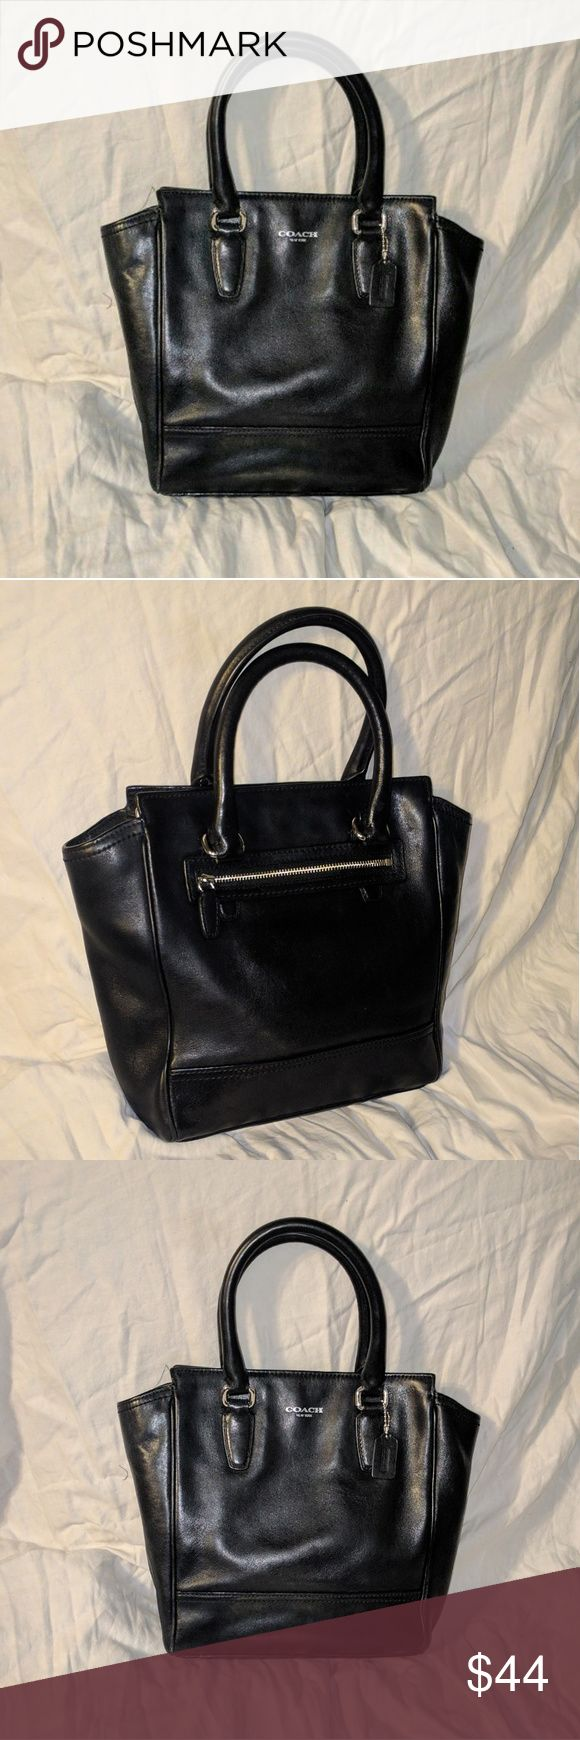 Coach Legacy Mini Tanner Black leather bag in good used condition. No rips or stains. Missing long strap that's why I have it priced so low. Coach Bags Mini Bags